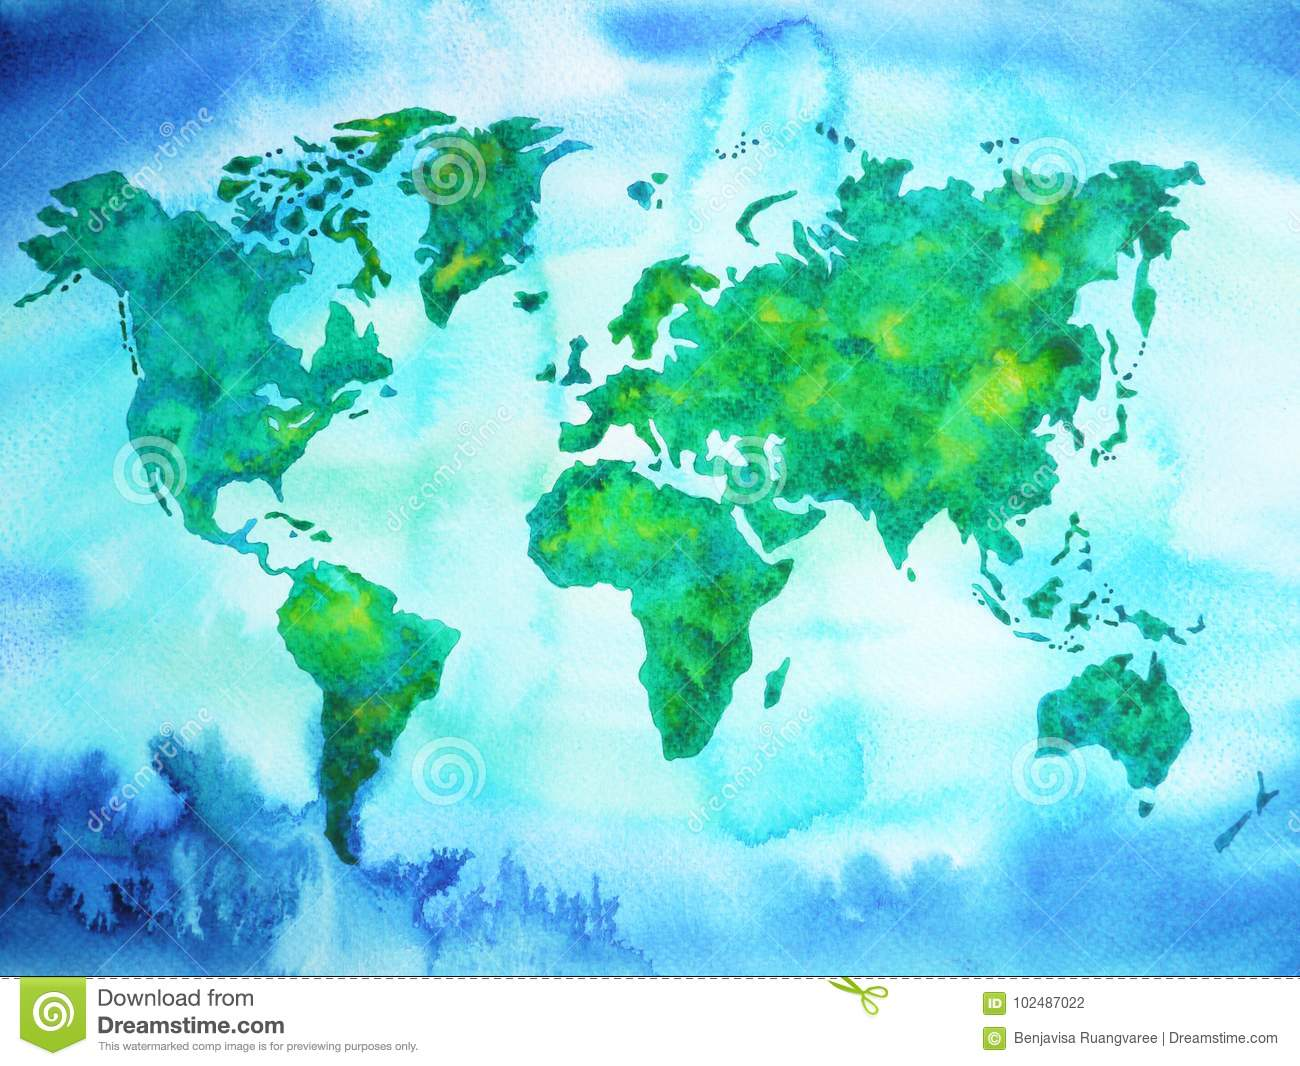 World map blue green tone watercolor painting on paper hand drawing world map blue green tone watercolor painting on paper hand drawing concept globe royalty free illustration gumiabroncs Images